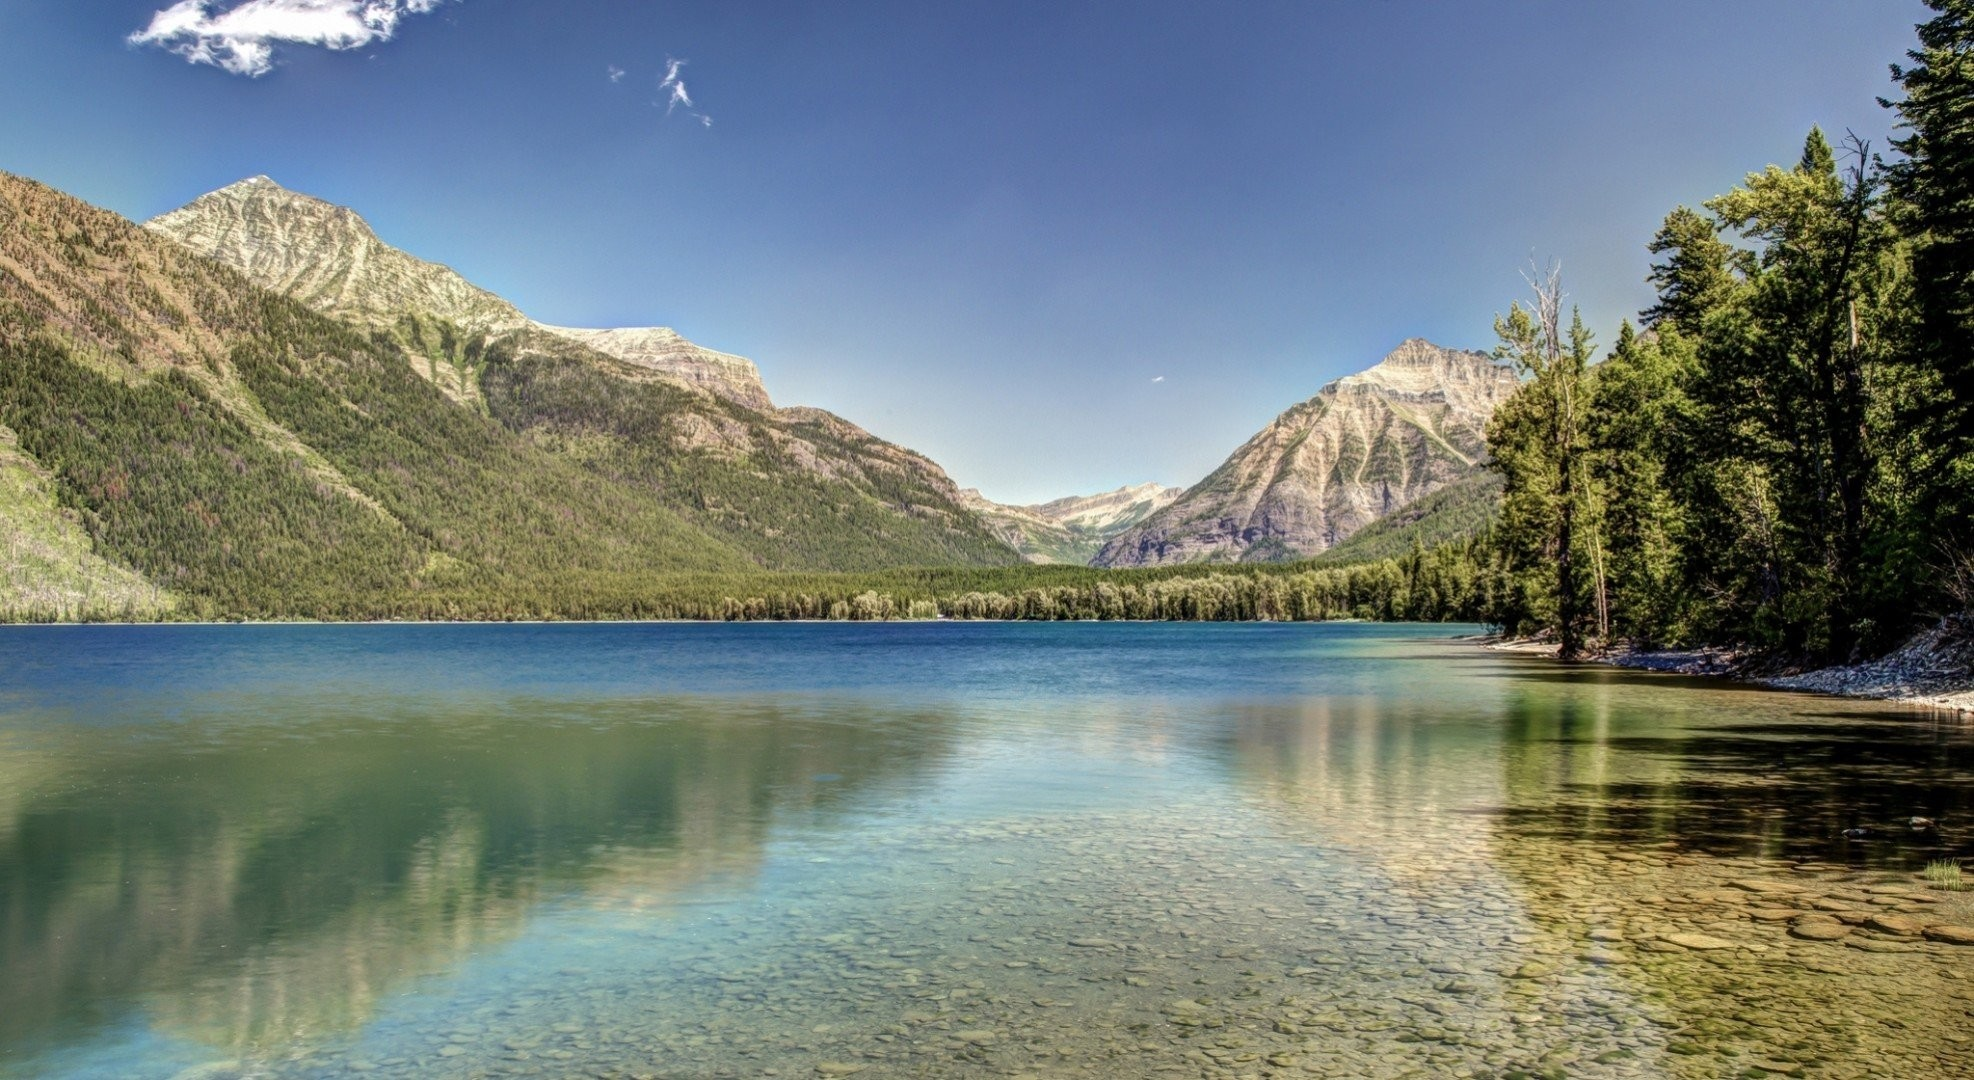 1974x1080 montana from the bottom lake montana forest glacier mountain glacier  national park lake mcdonald